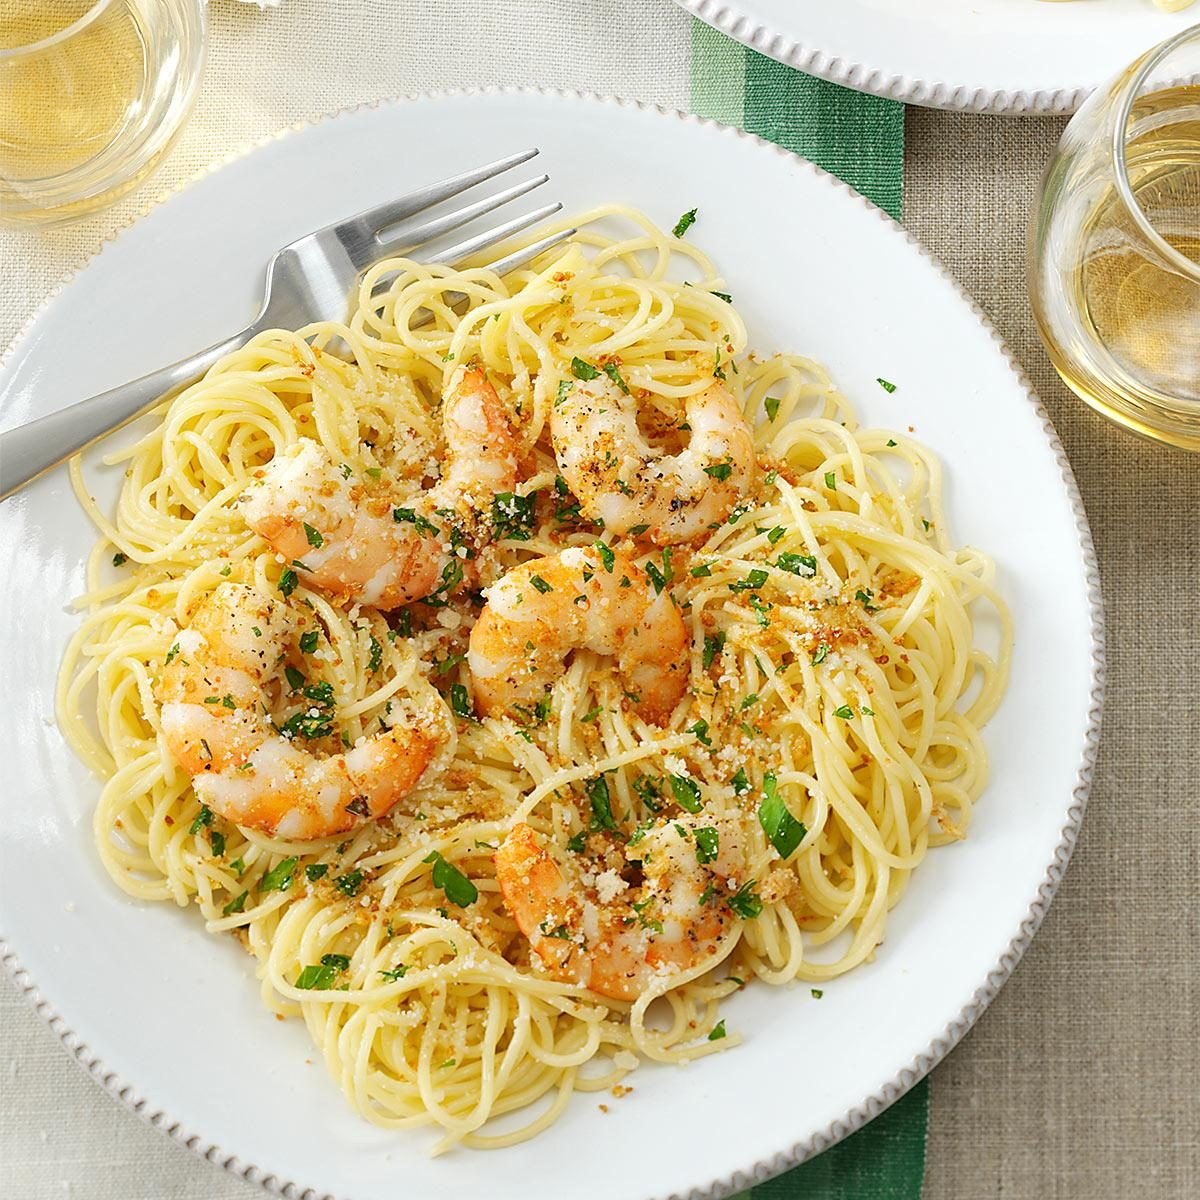 Shrimp scampi recipe taste of home for Easy things to make for dinner for two